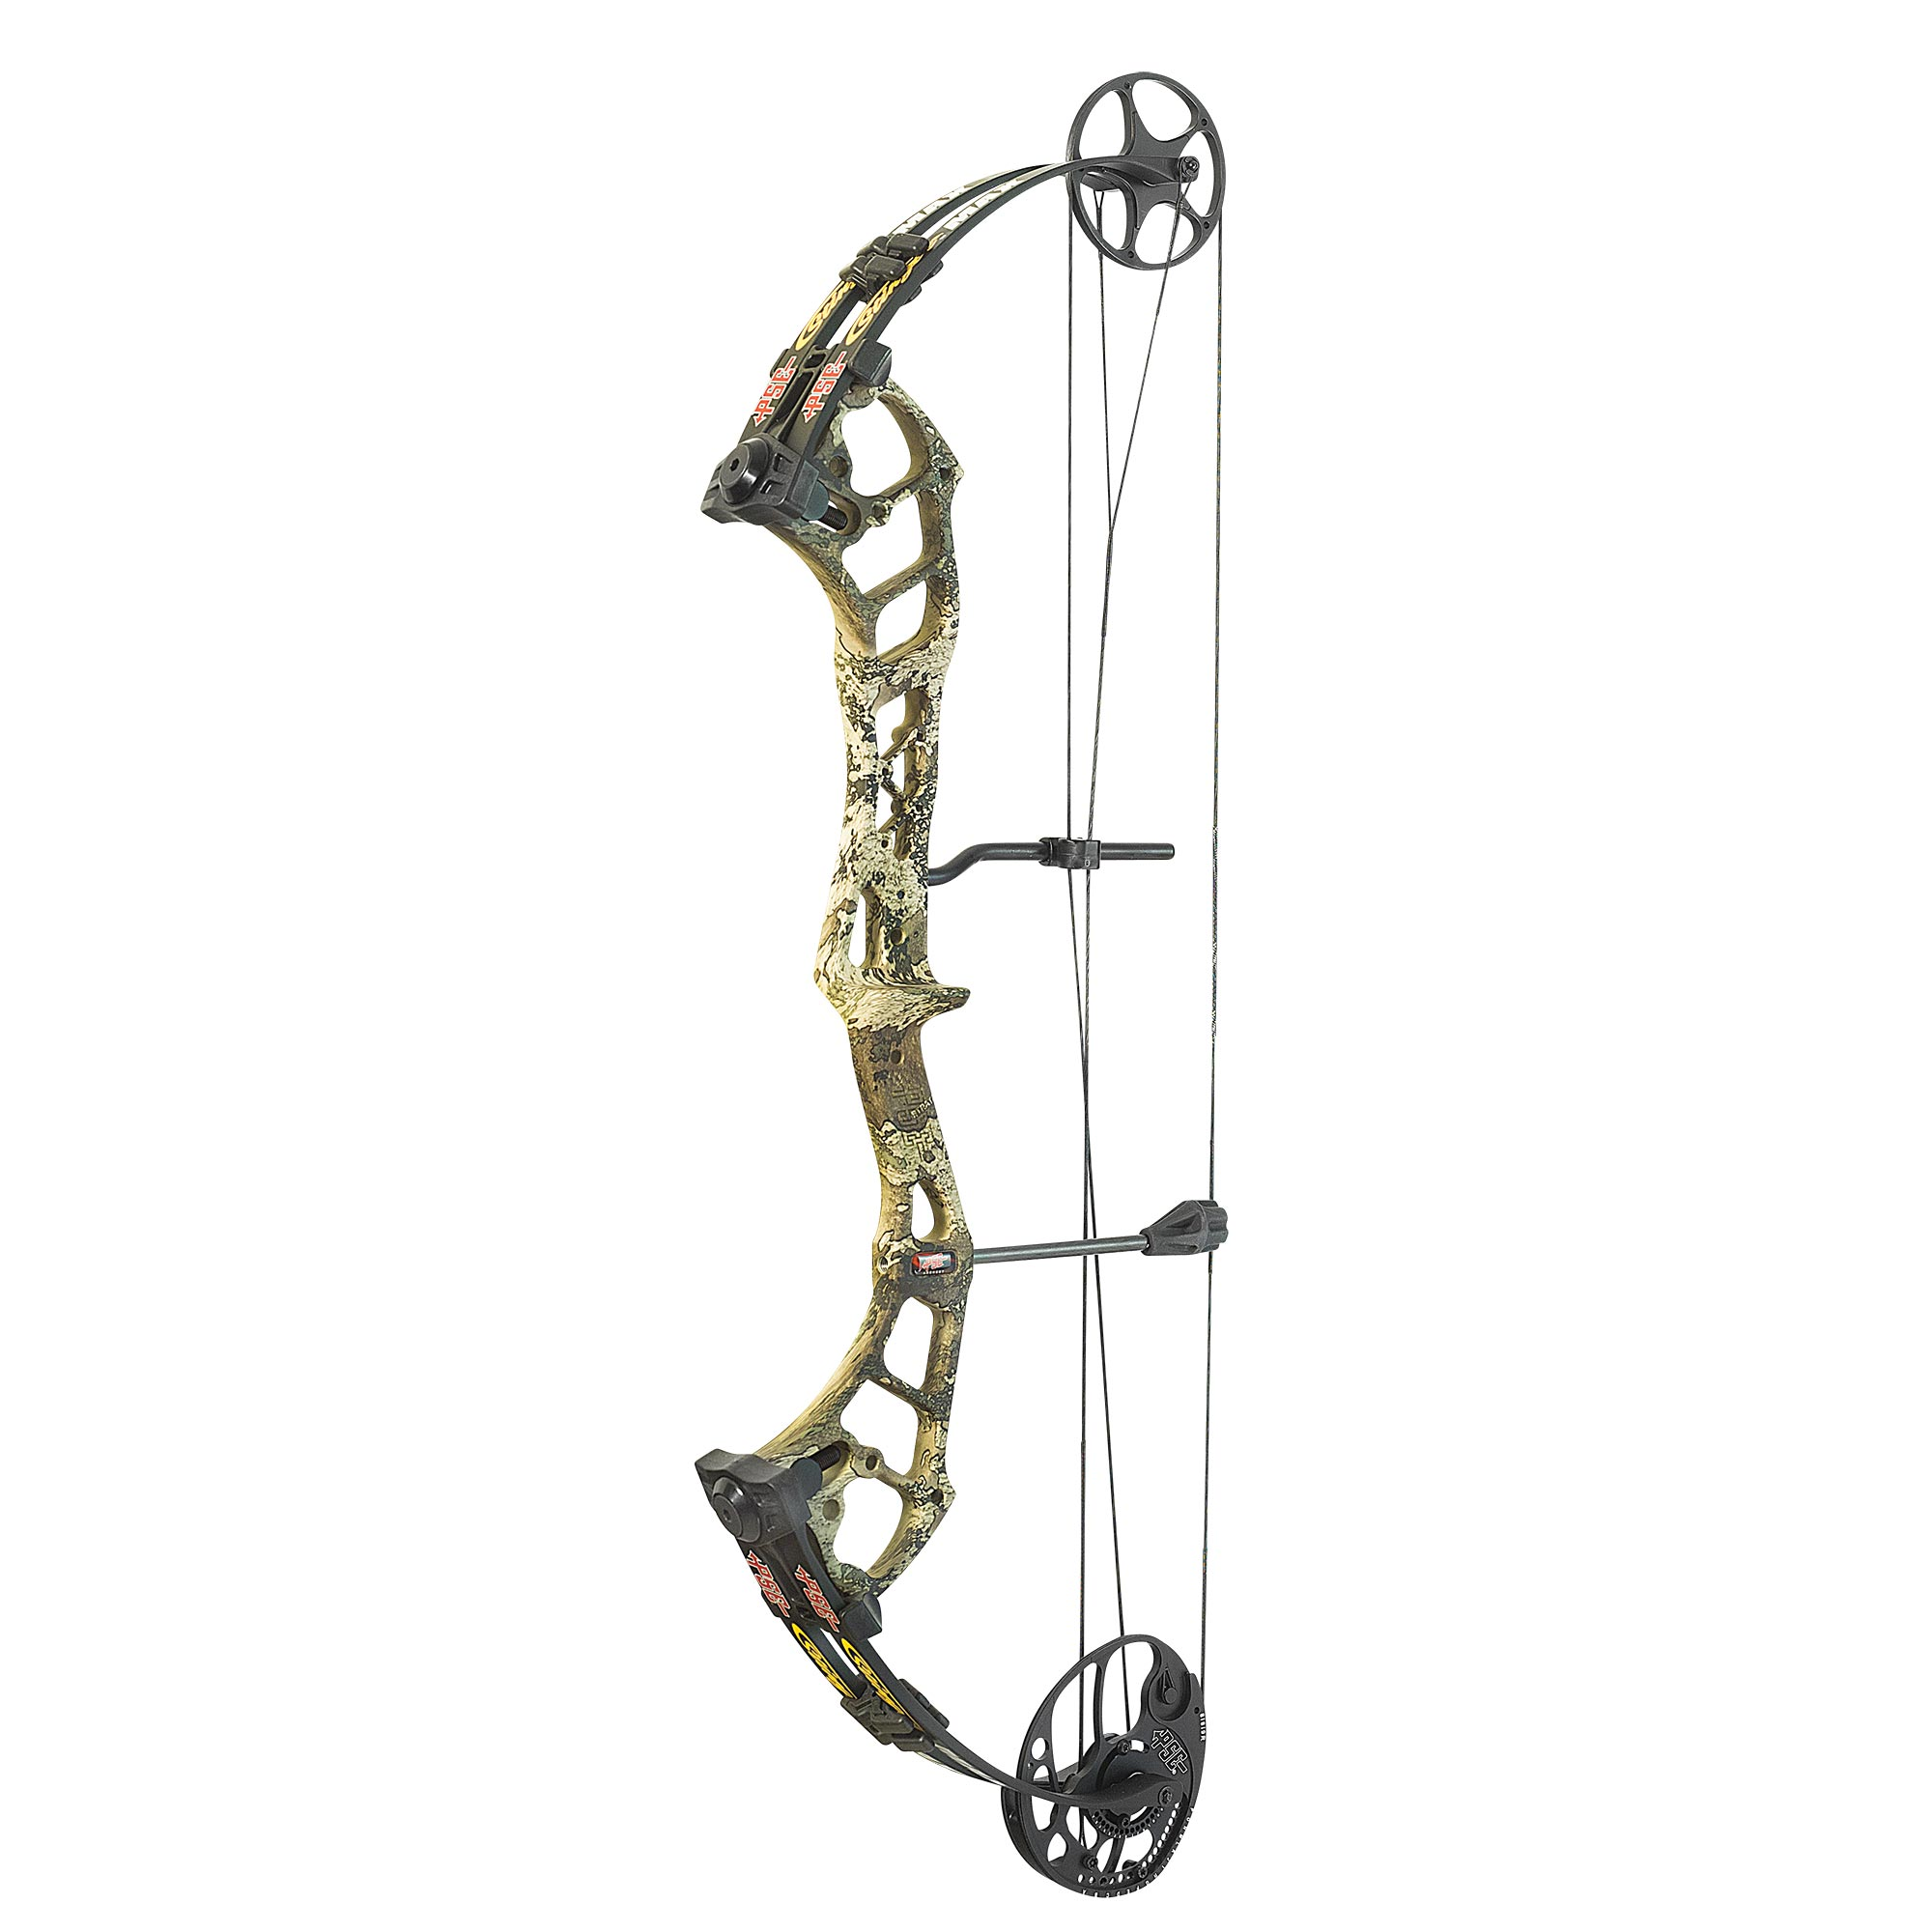 2020 Stinger MAX in Mossy Oak Country